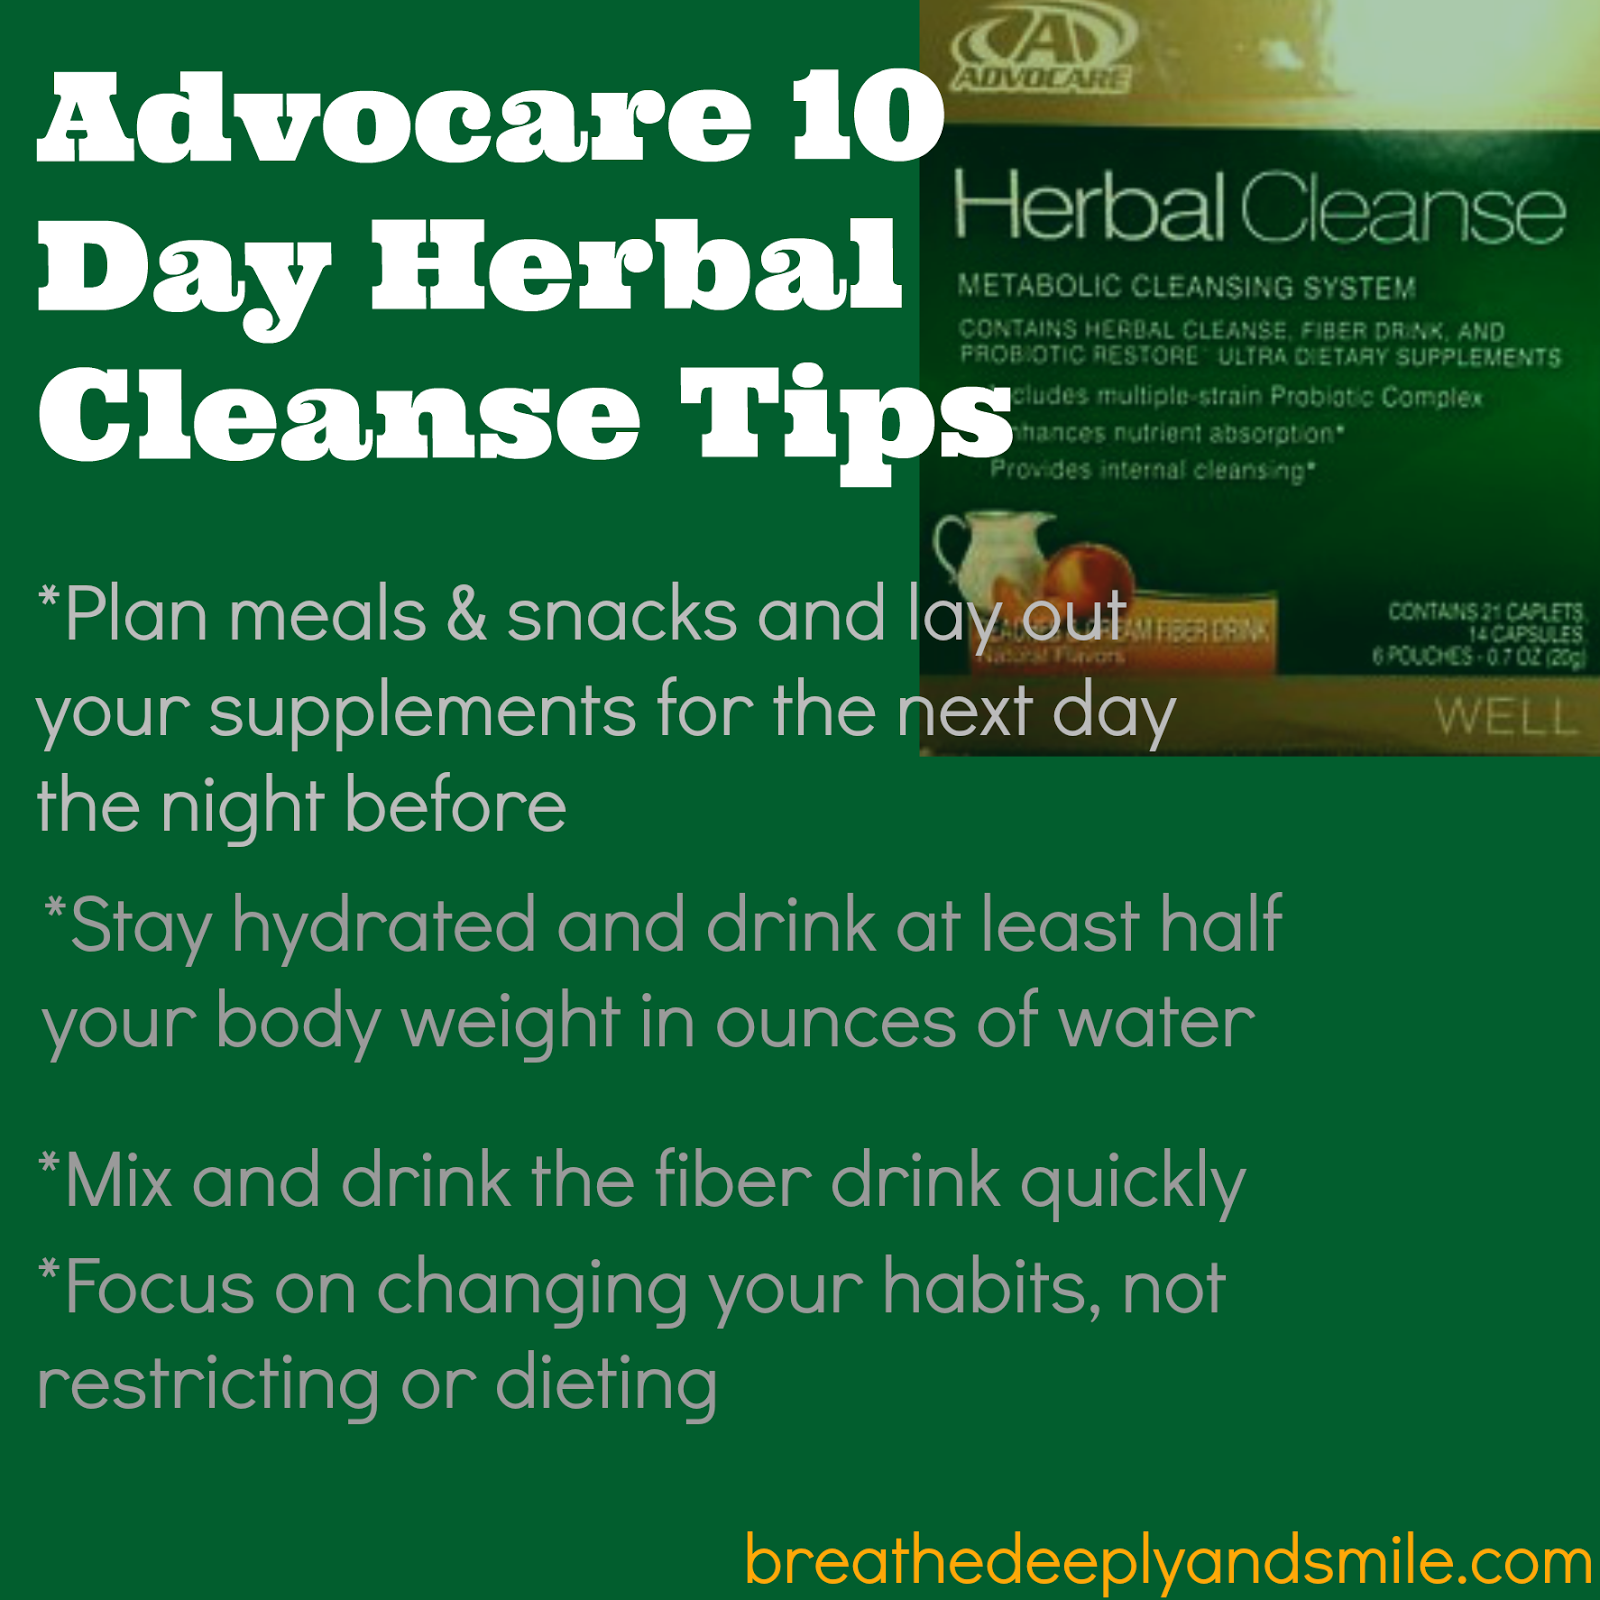 advocare-10-day-herbal-cleanse-tips1